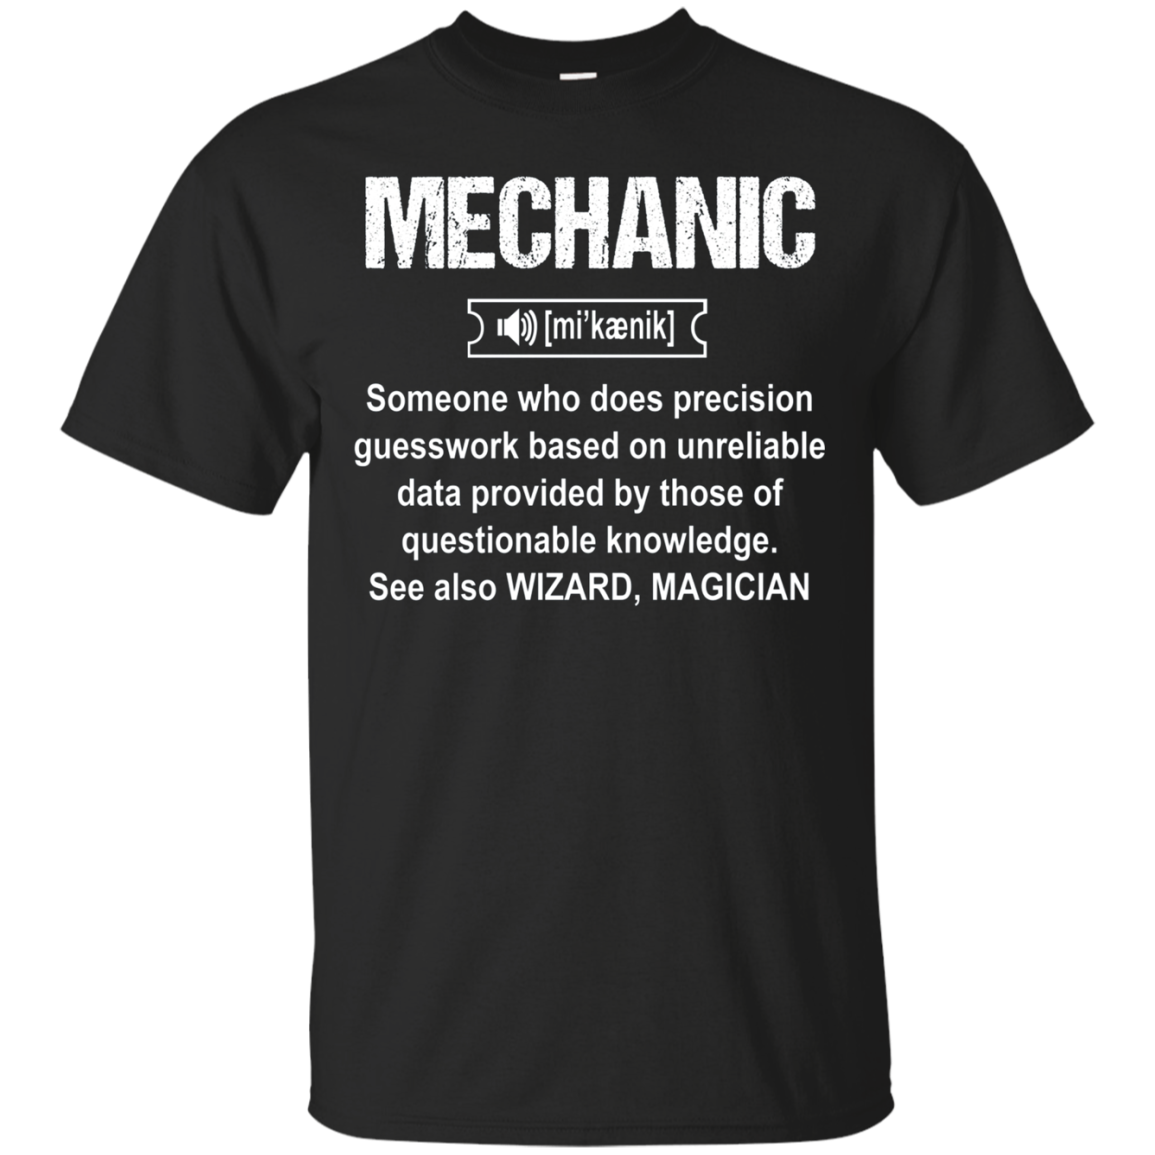 Mechanic someone who does precision guesswork T-shirt